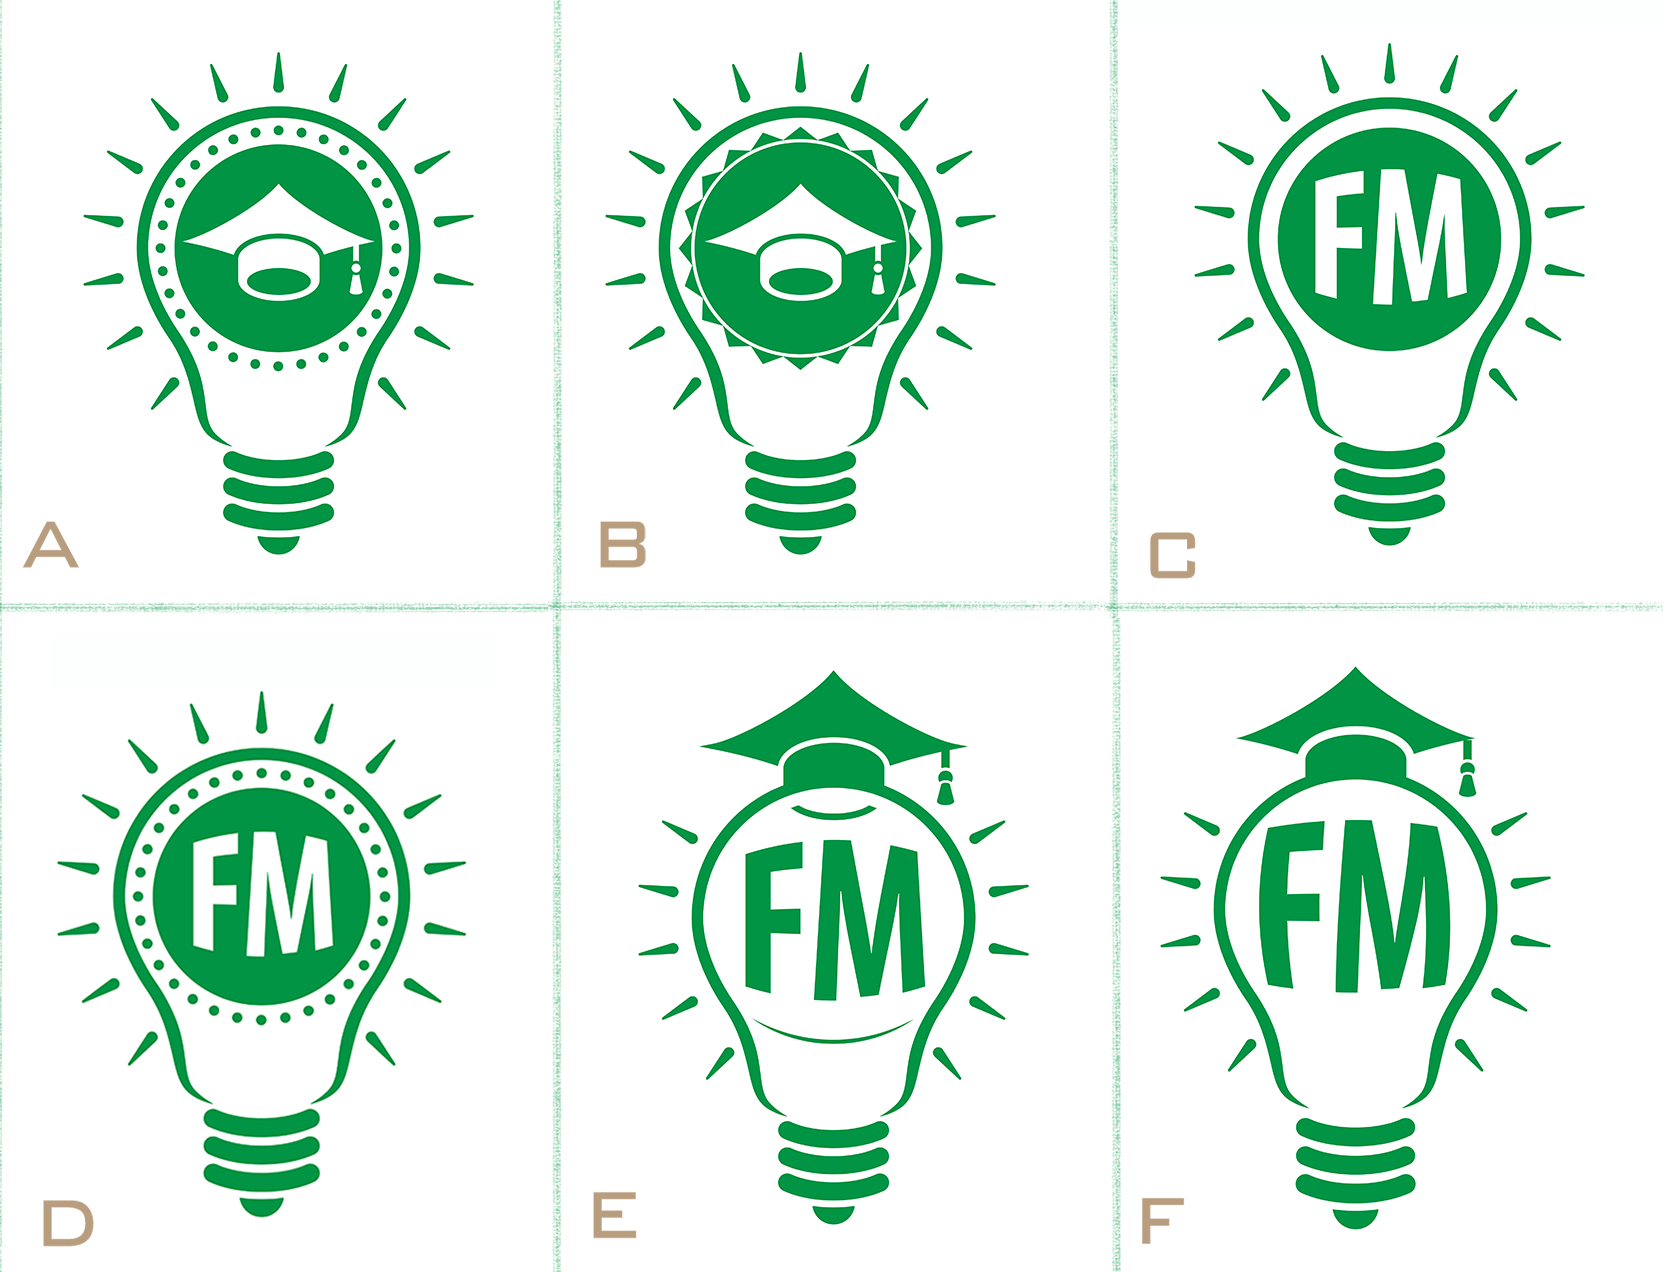 FM EF Logo Design Iterations (Small)